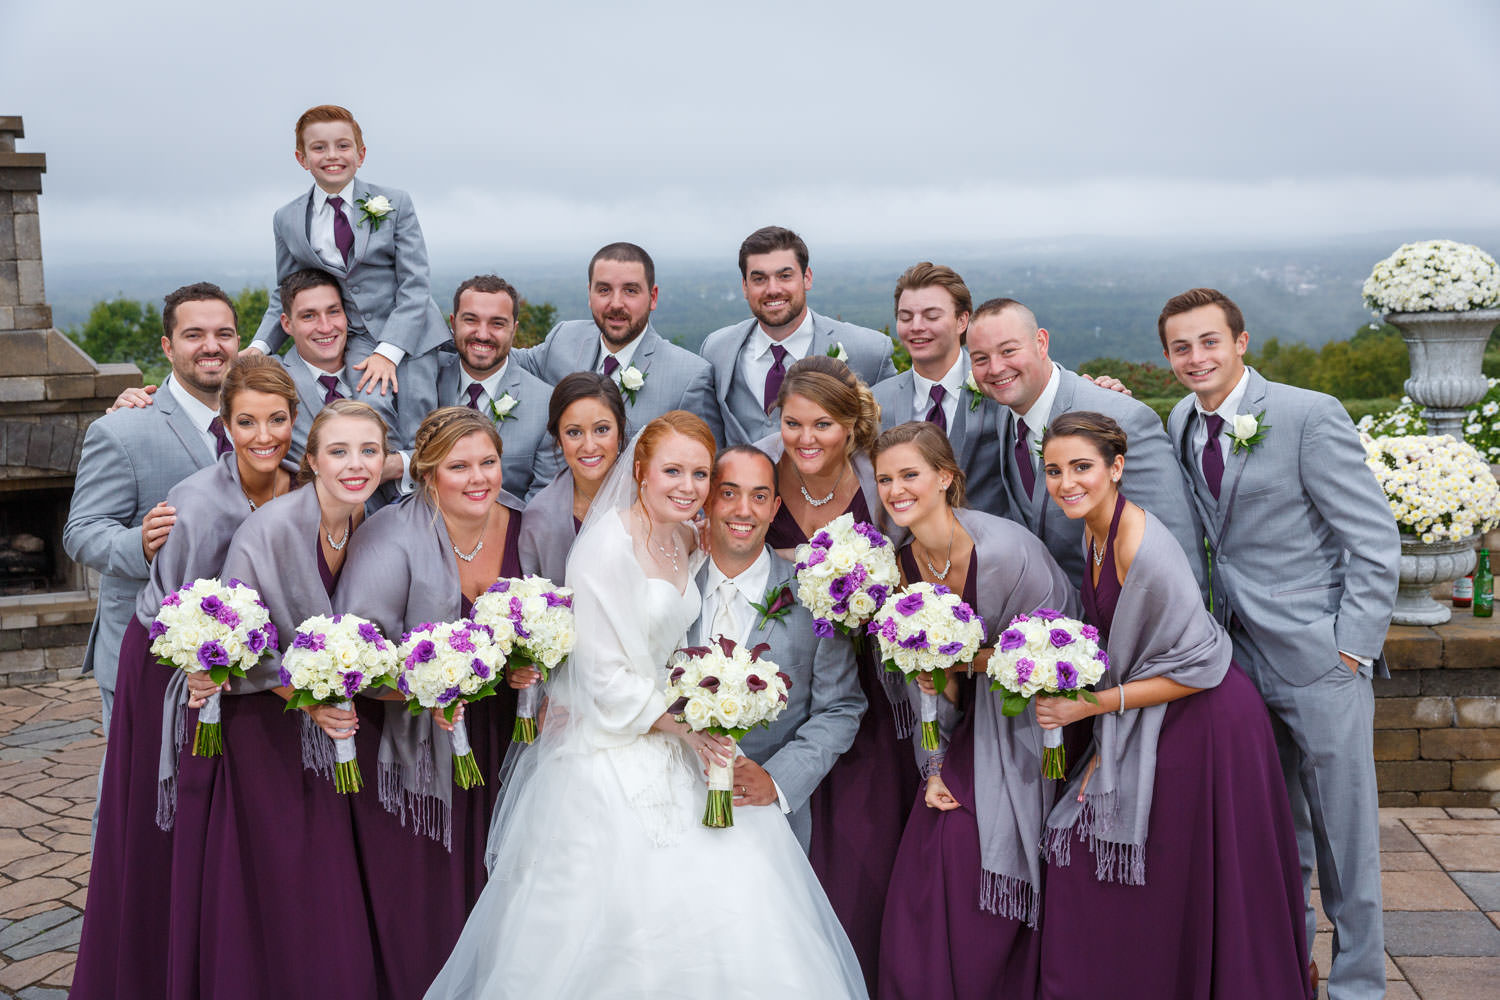 Large wedding party photo with flowers